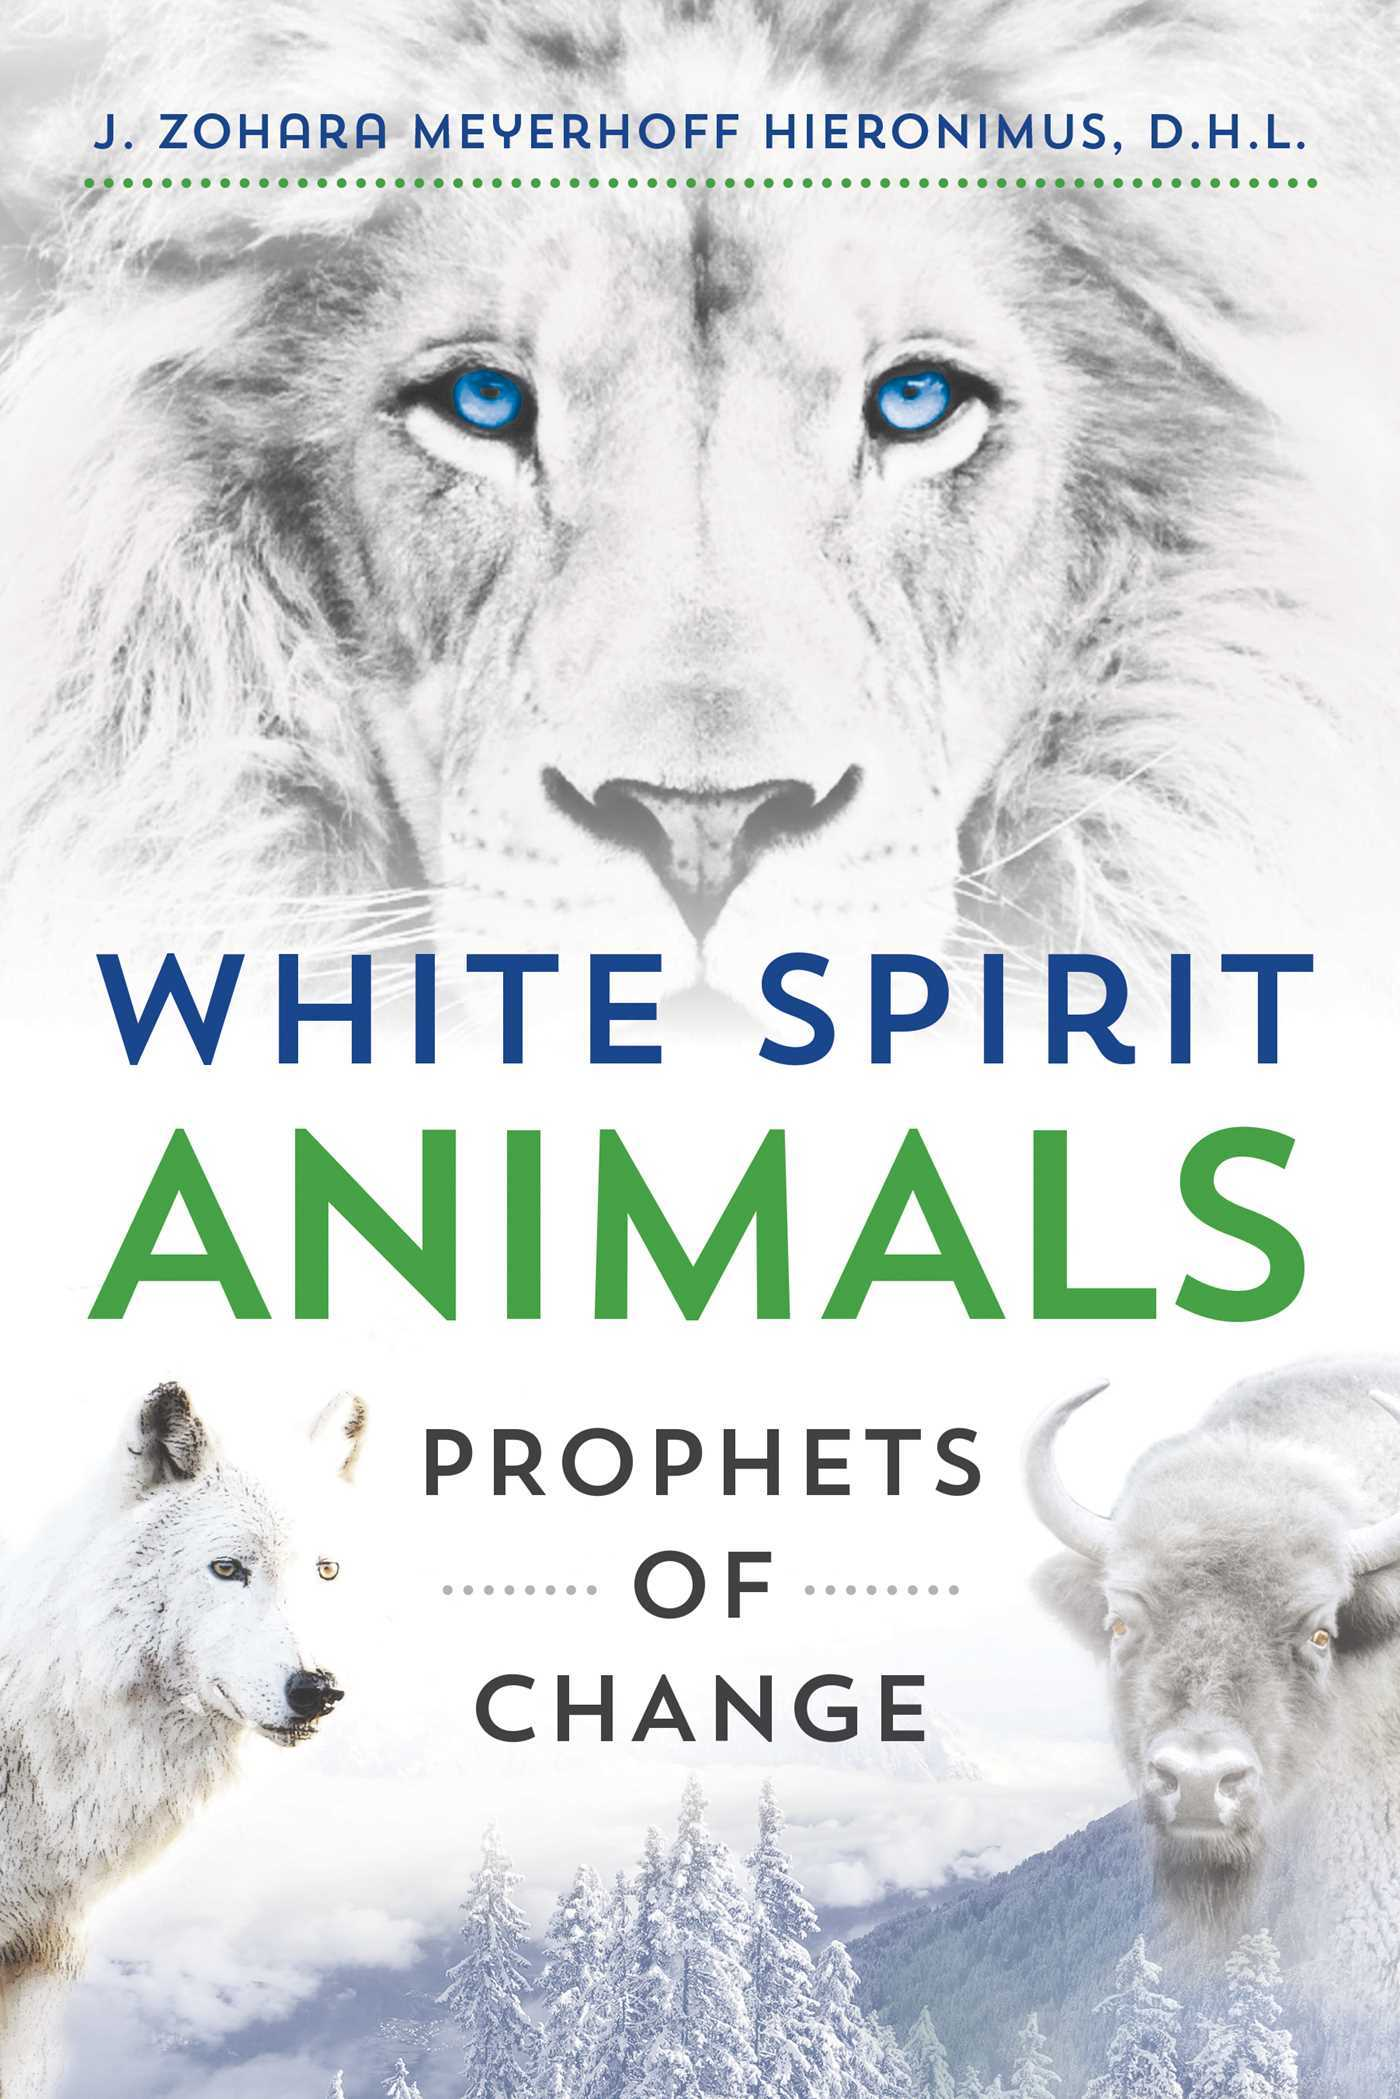 White Spirit Animals Prophets of Change